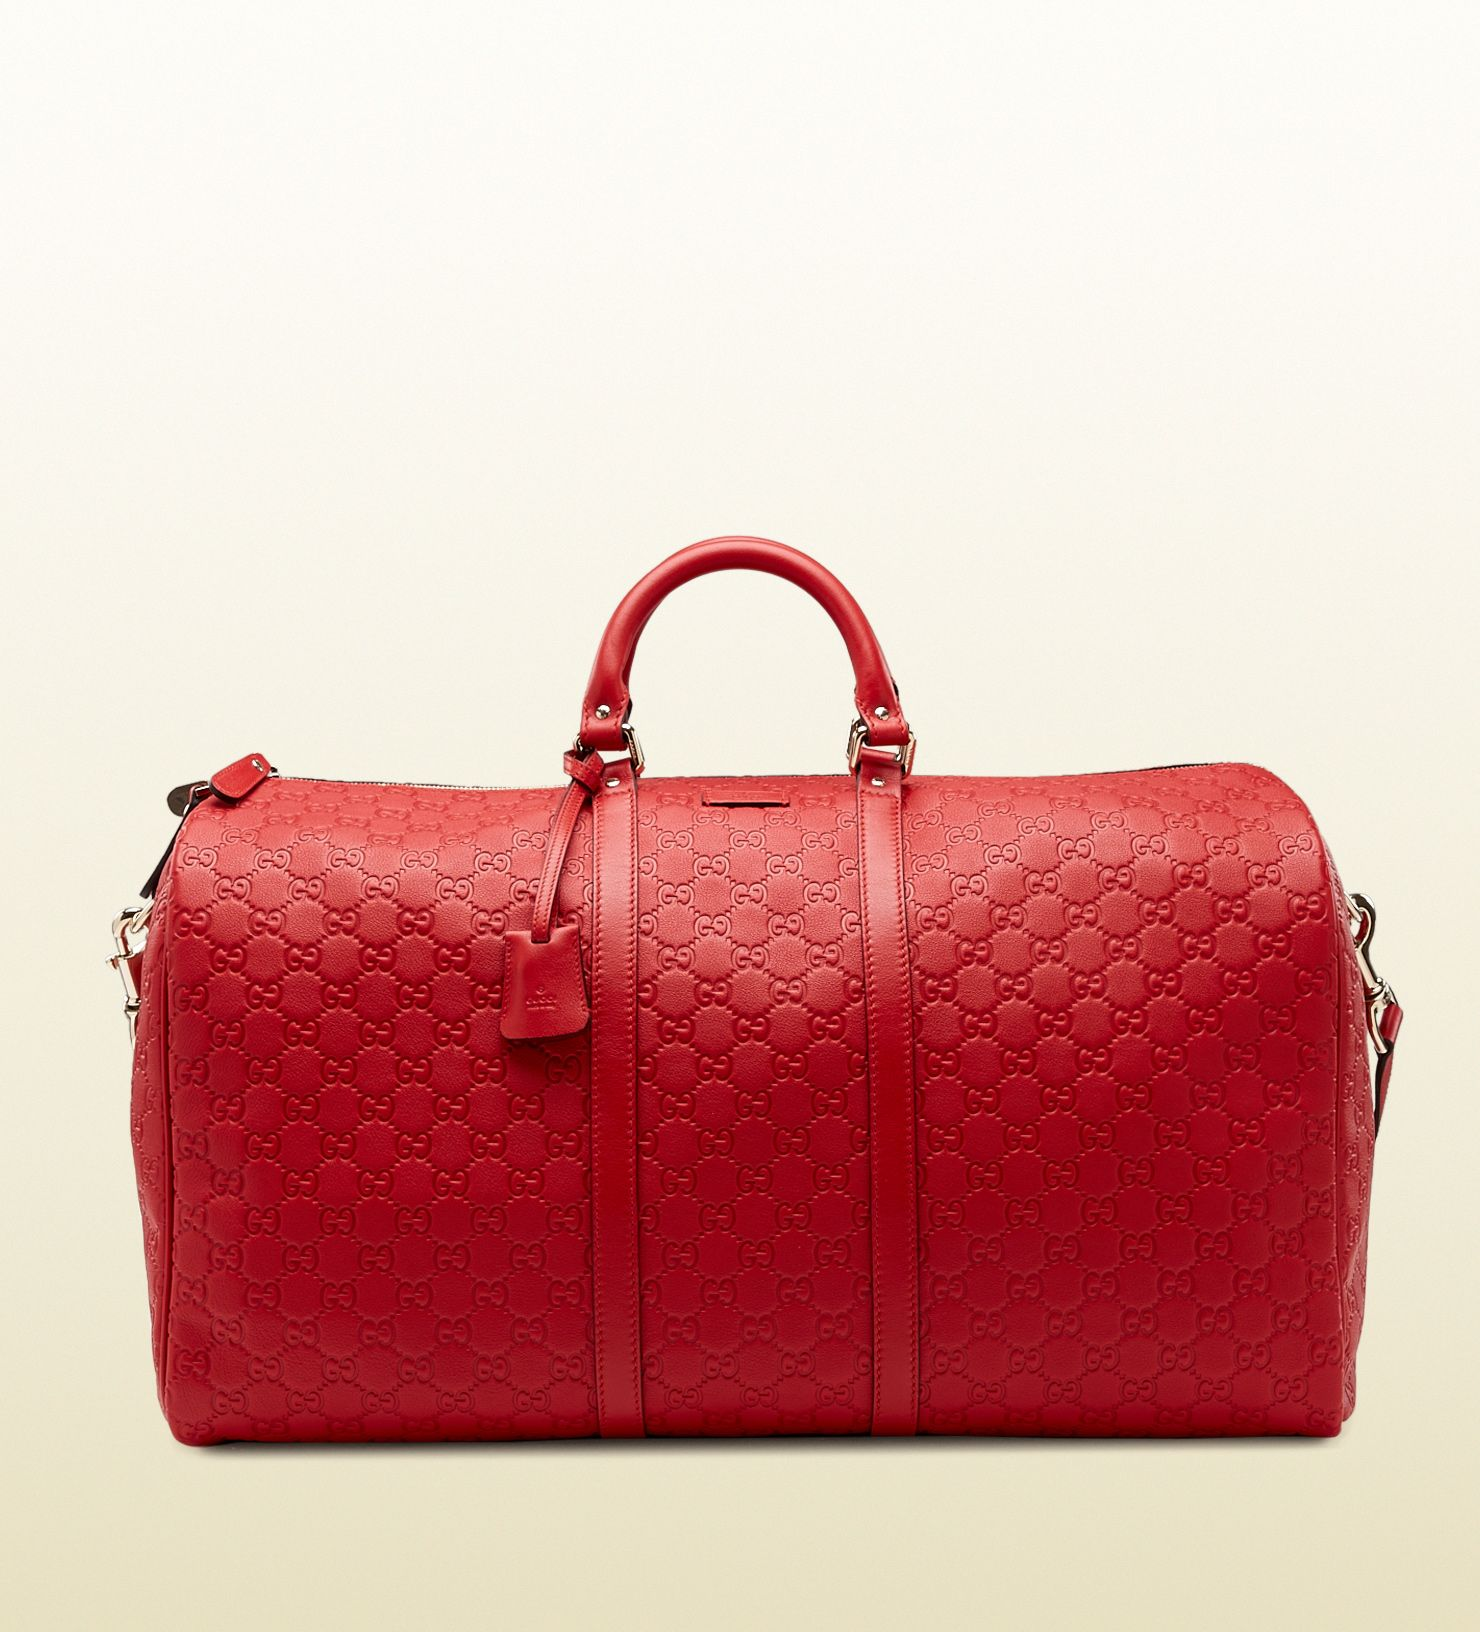 0ce47d69920f Gucci red guccissima leather carry-on duffel bag | Bag Lady in 2019 ...